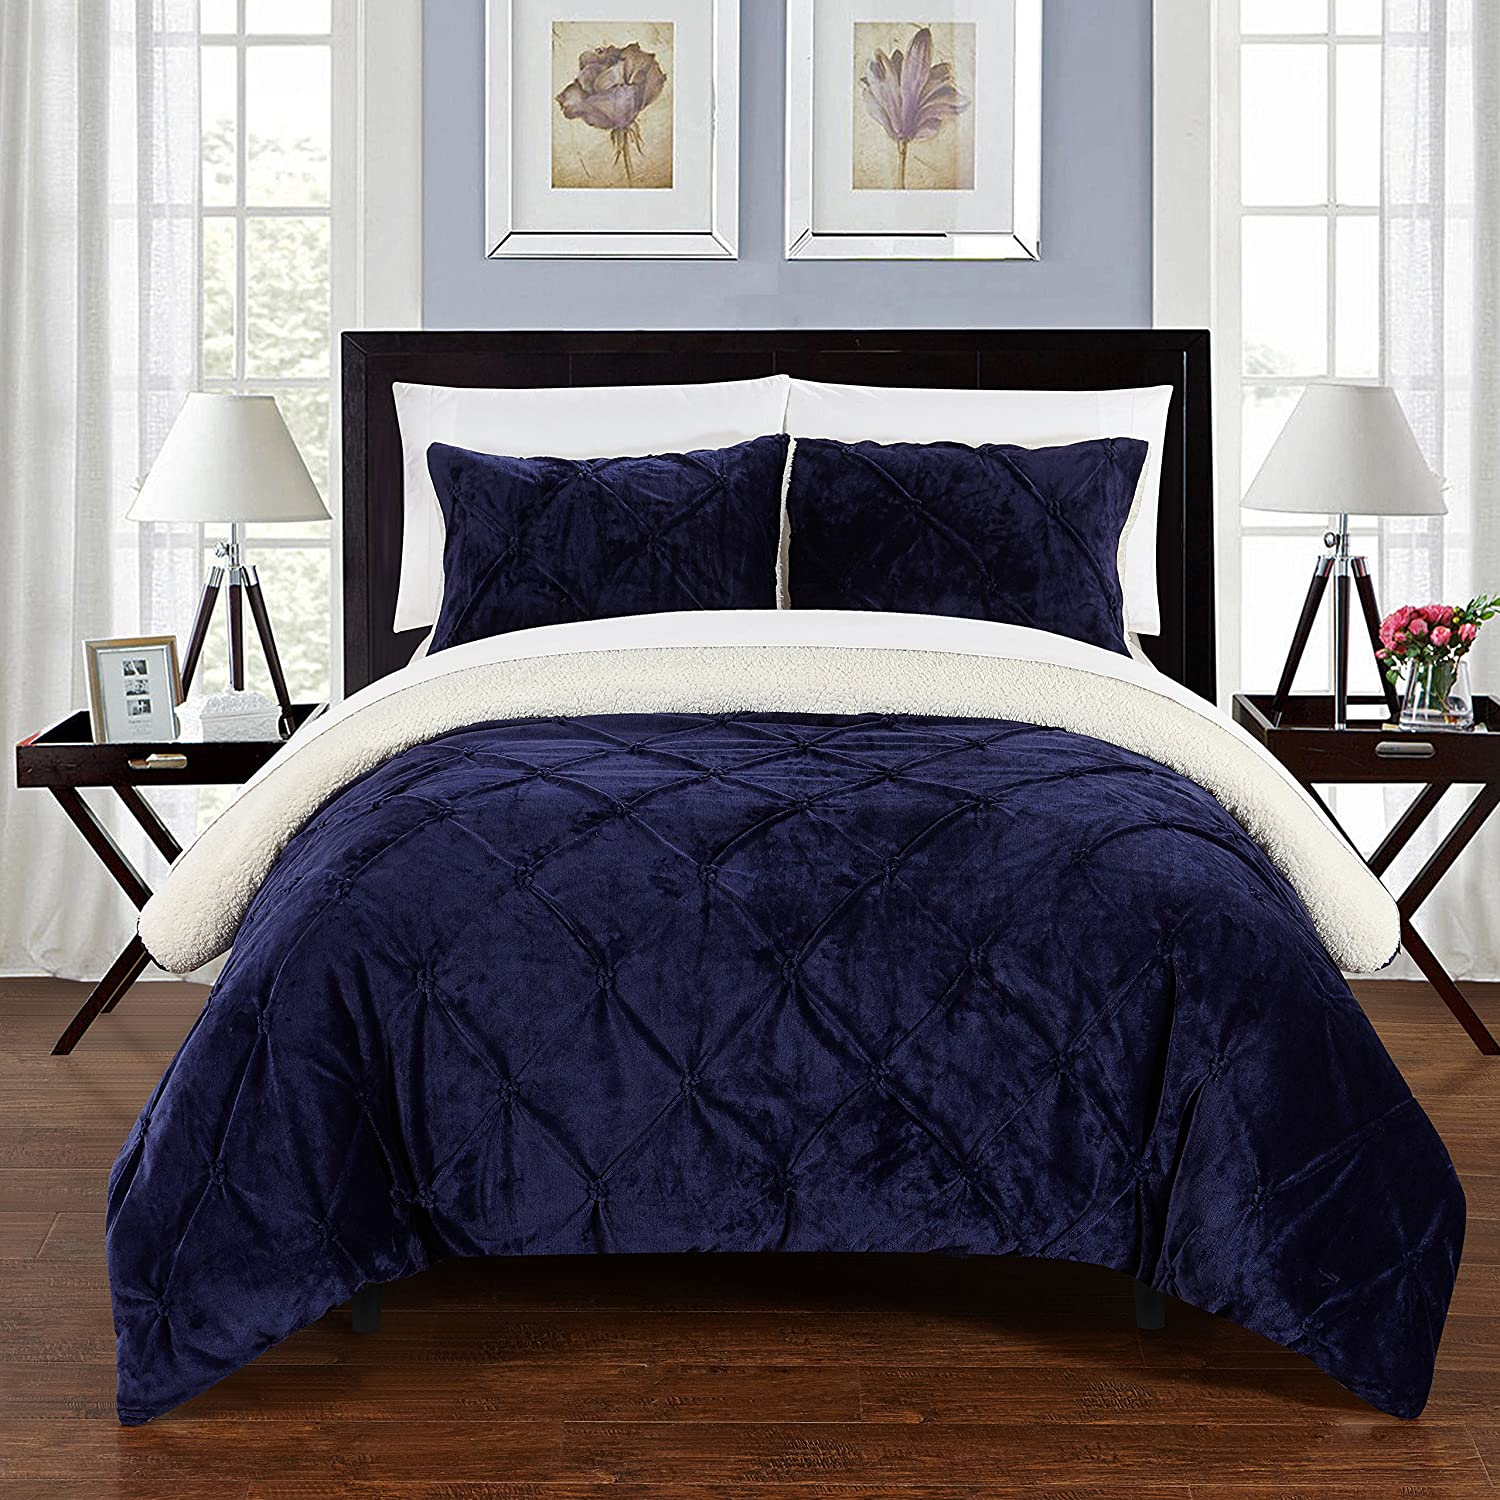 Chic Home 3 Piece Josepha Pinch Pleated Ruffled and Pin Tuck Sherpa Lined Queen Bed in a Bag Comforter Set Navy